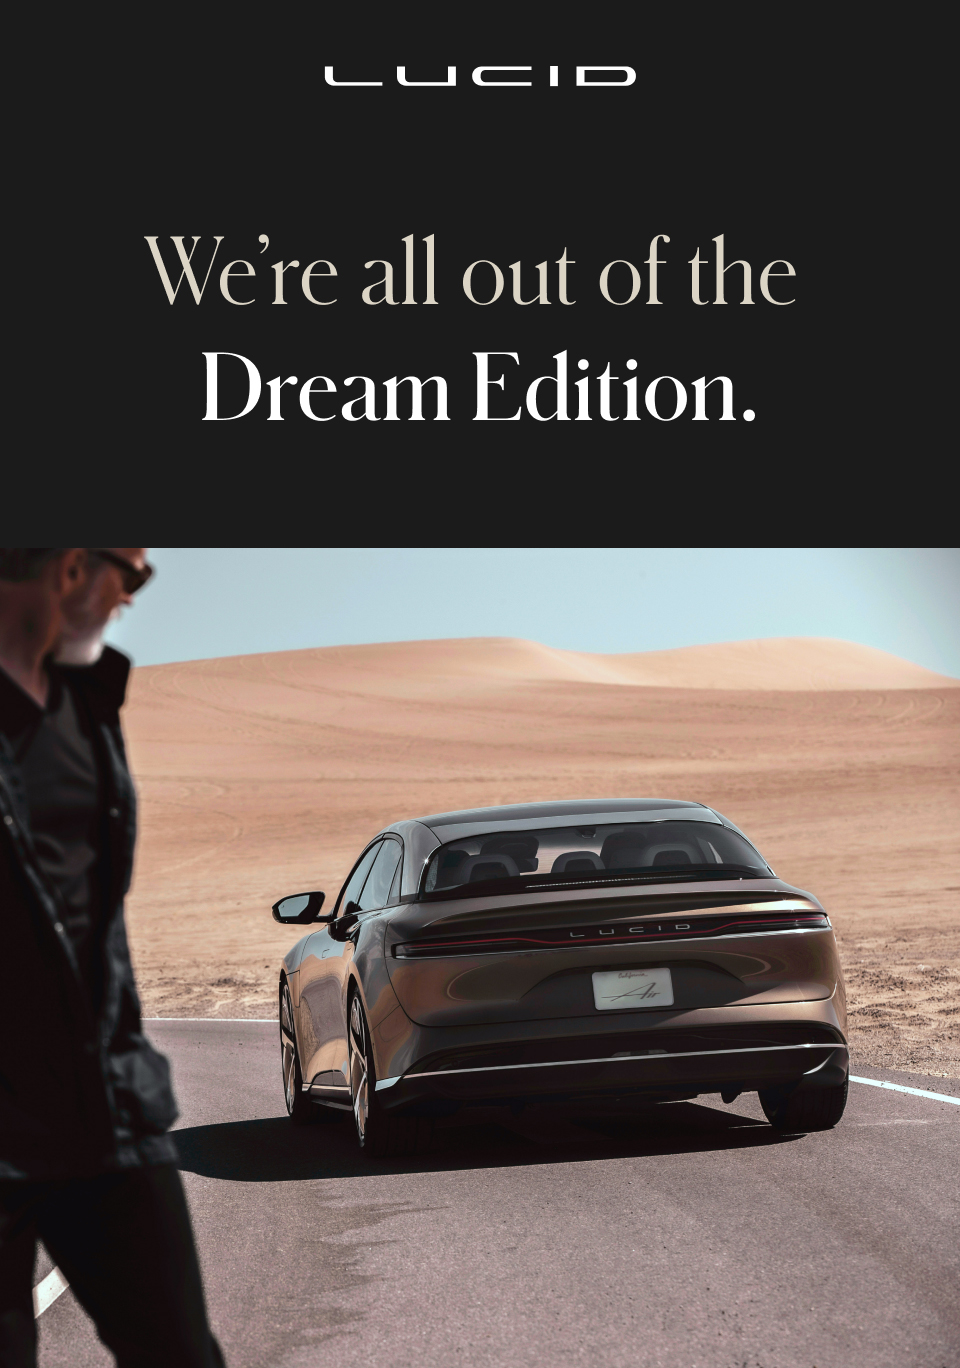 We're all out of the Dream Edition.